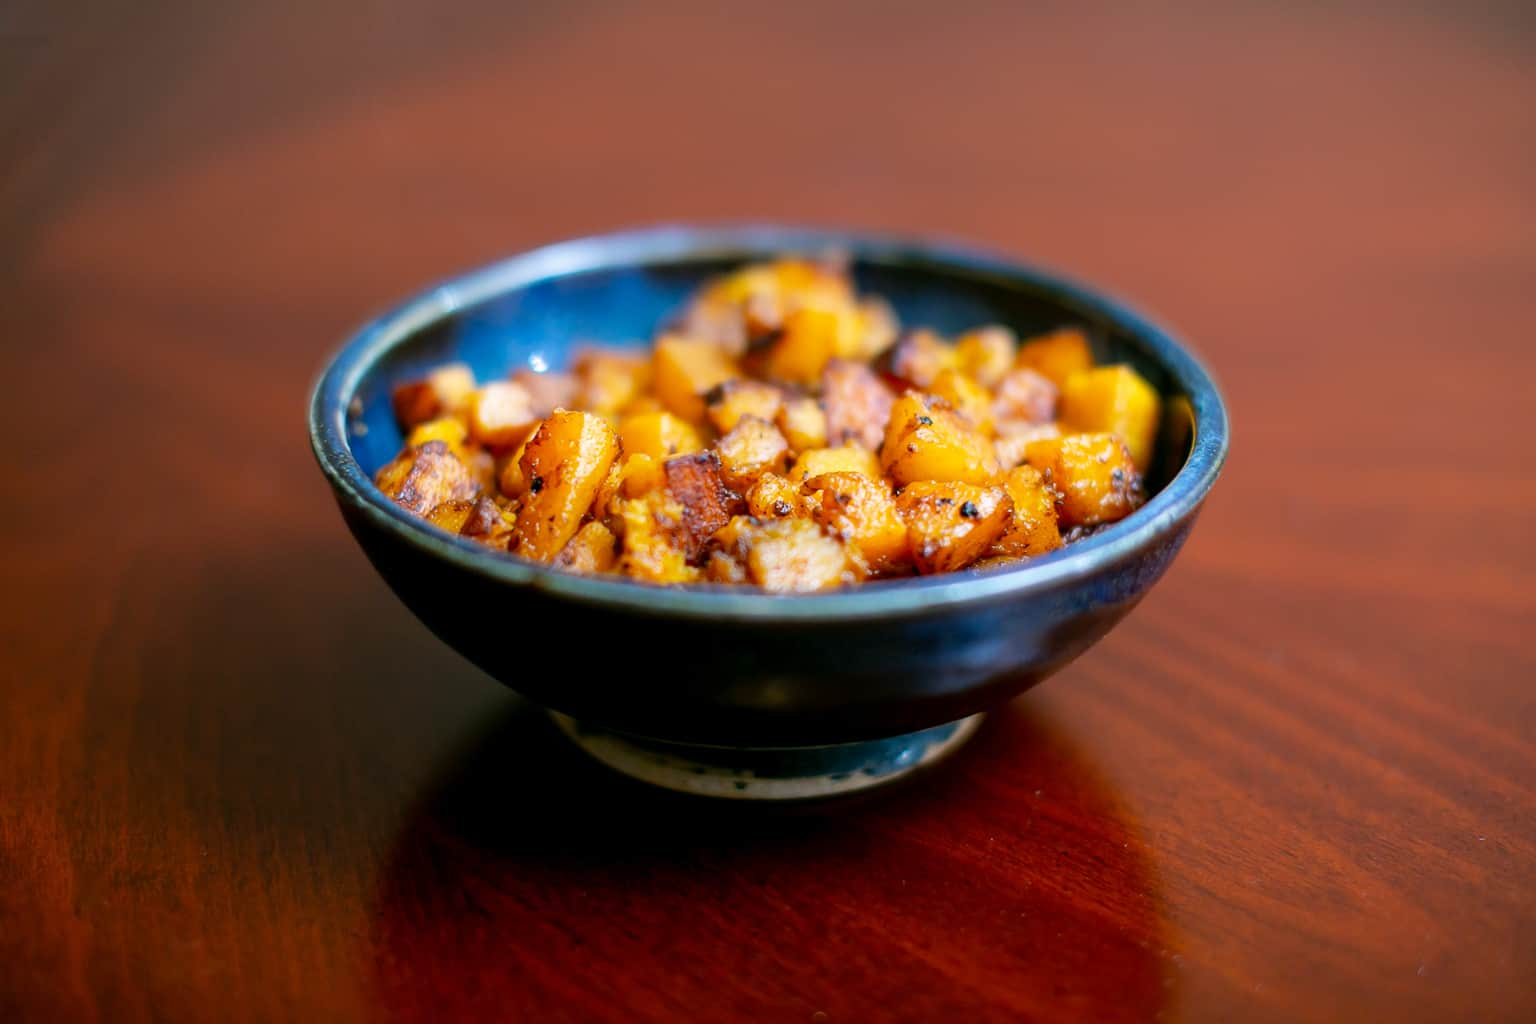 A bowl of roasted butternut squash